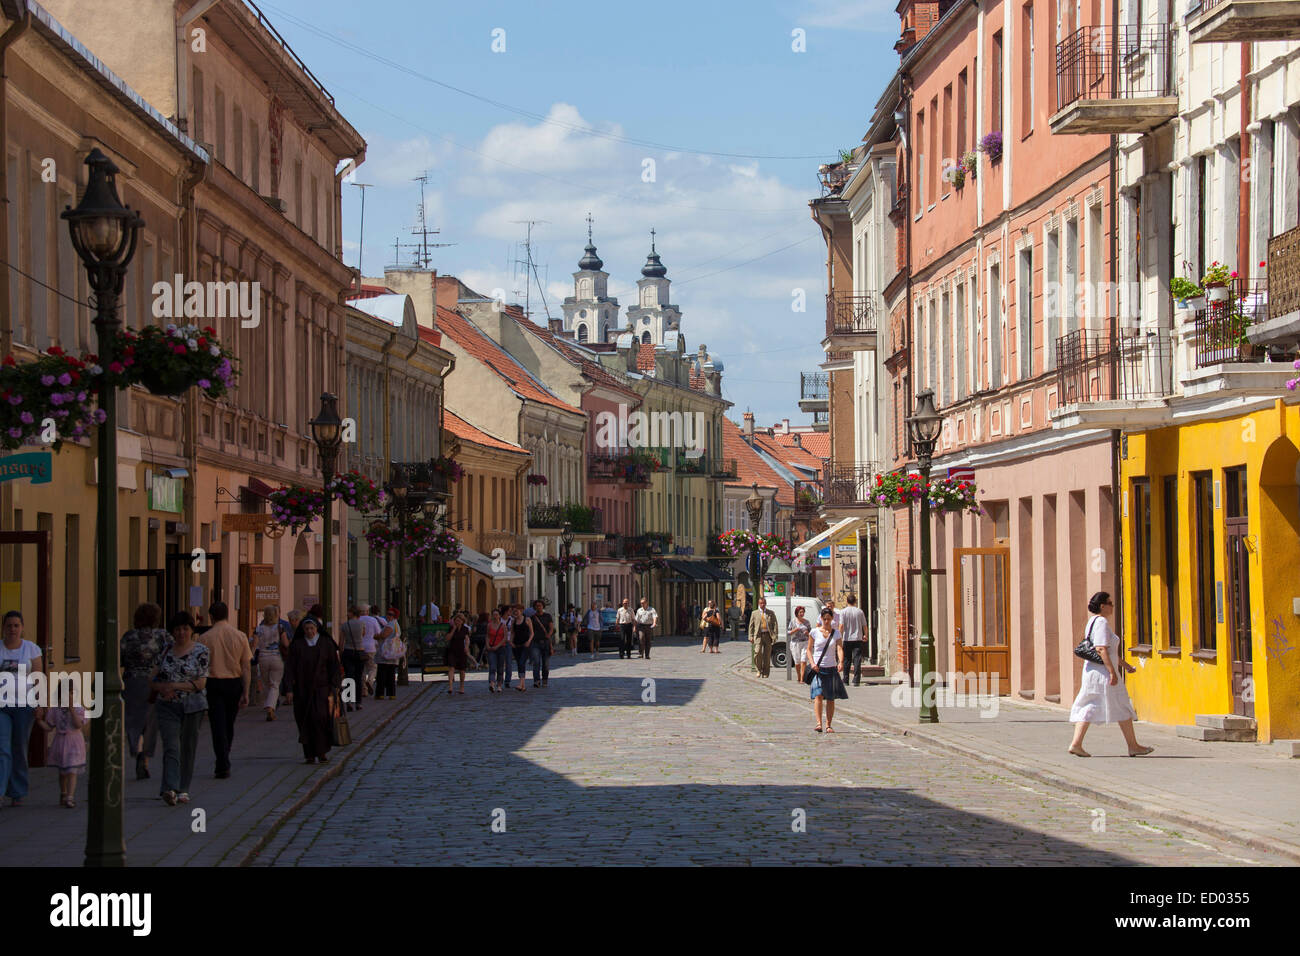 Lithuania, Kaunas, center city. - Stock Image